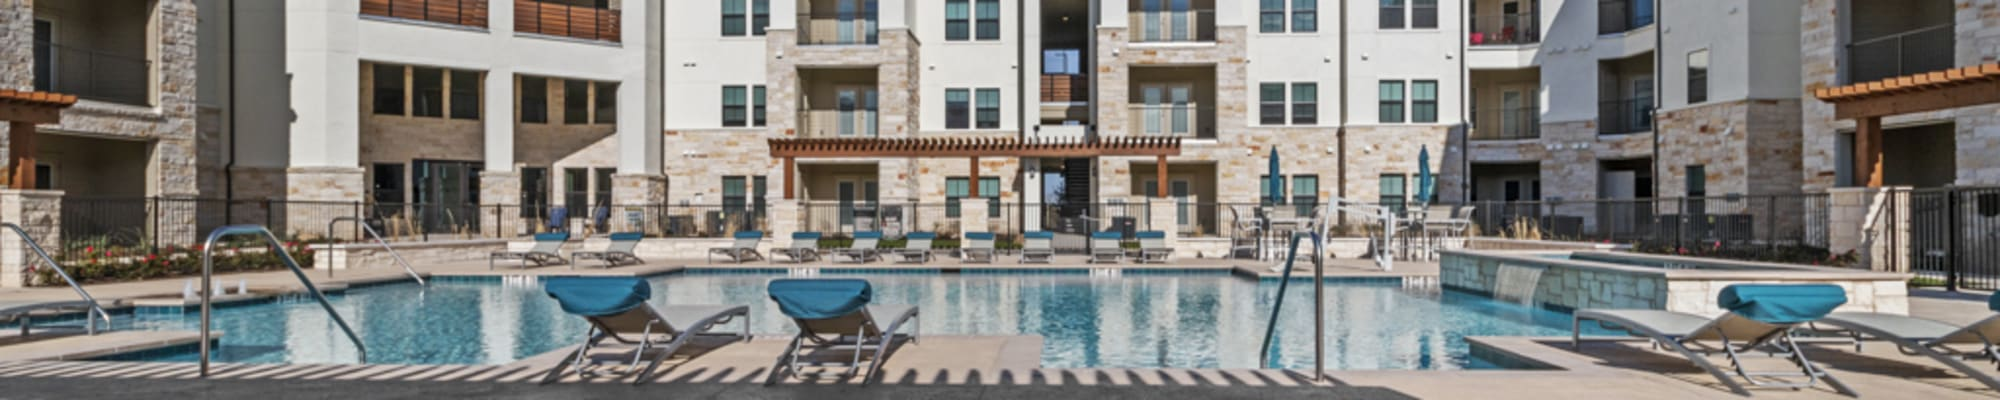 Amenities at McCarty Commons in San Marcos, Texas